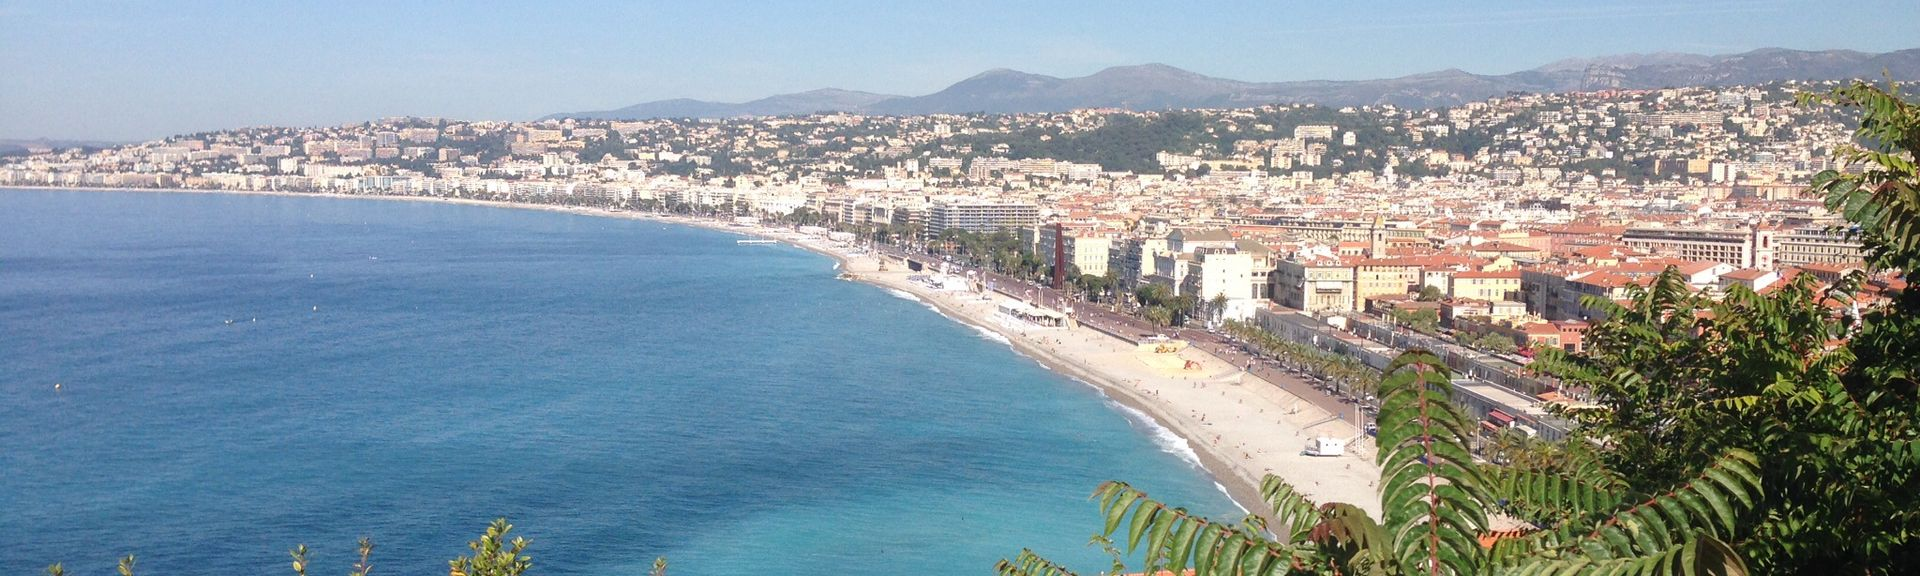 Carre d'Or, Nice, France